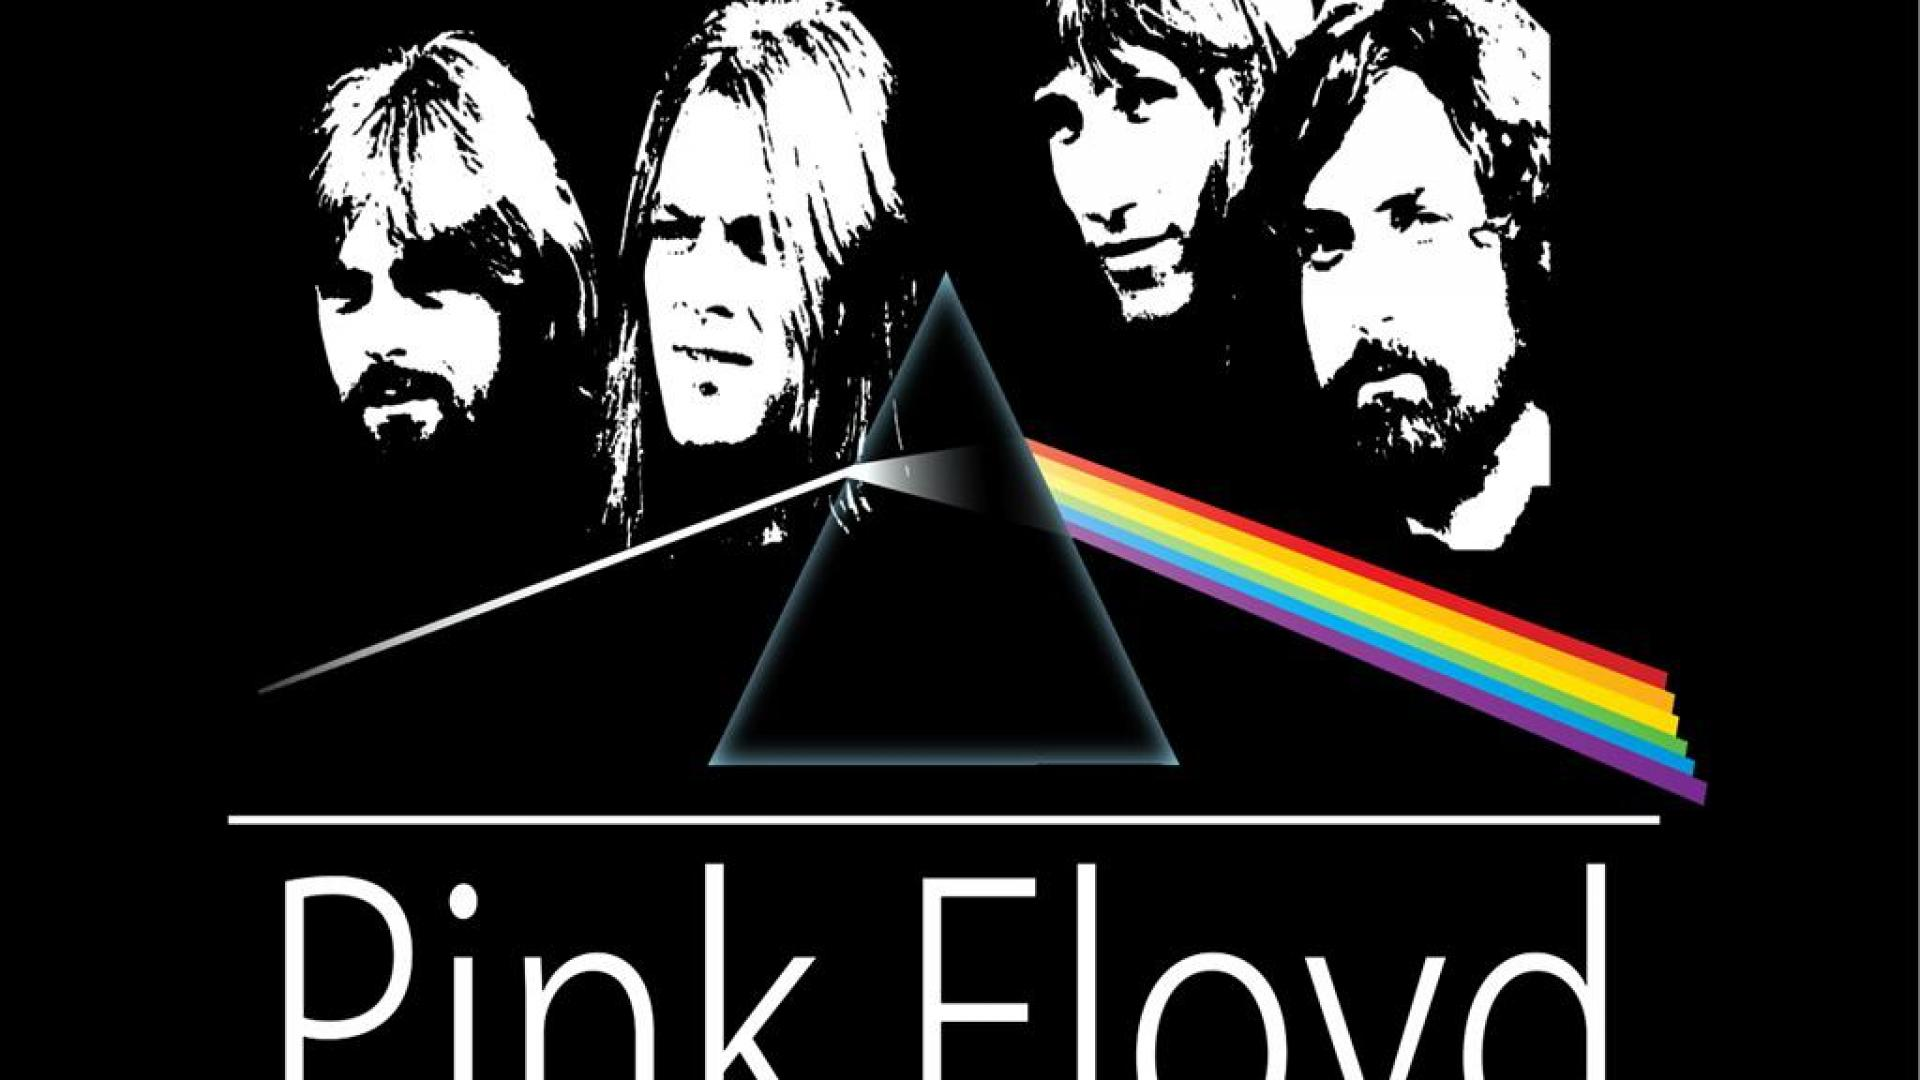 Pink Floyd Dark Side Of The Moon Band Members Full HD Wallpaper For ...